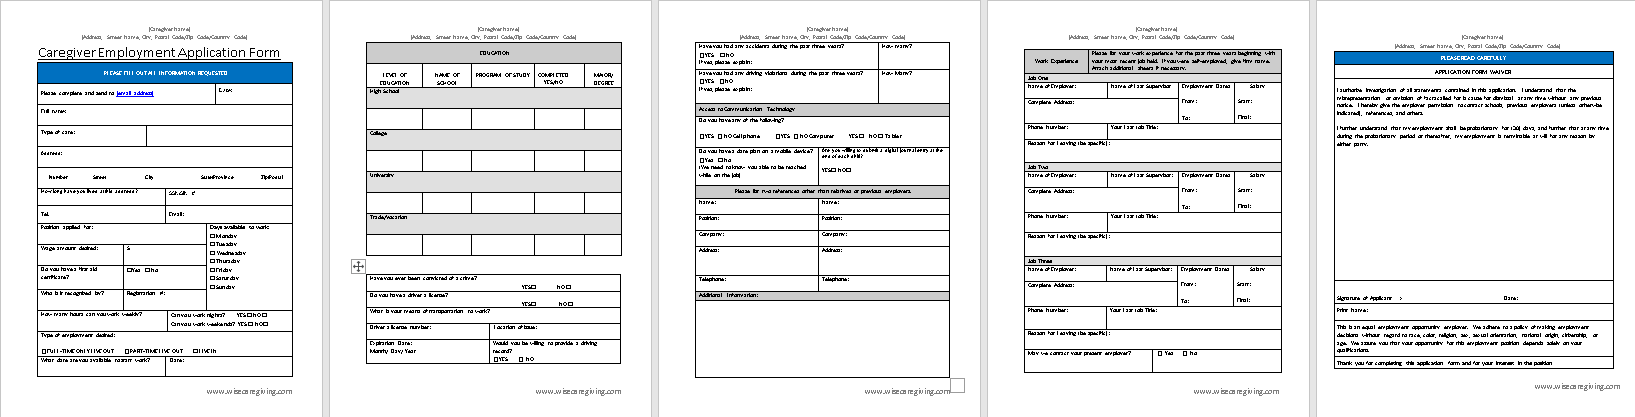 Caregiver Employment Application Form Template